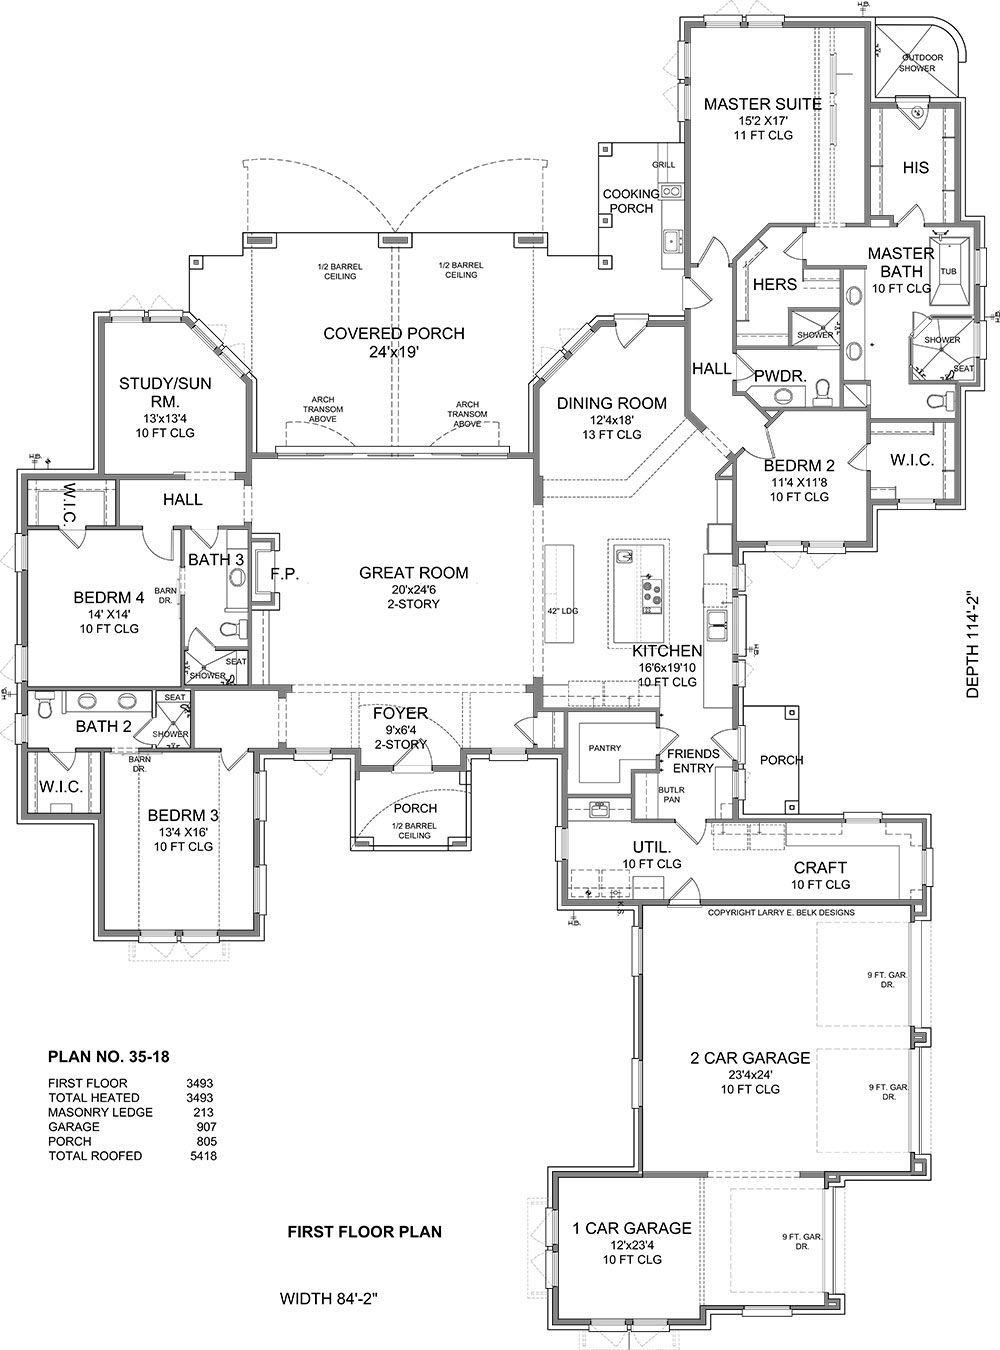 First Floor Plan image of Butterfly | House plans, Barn ...